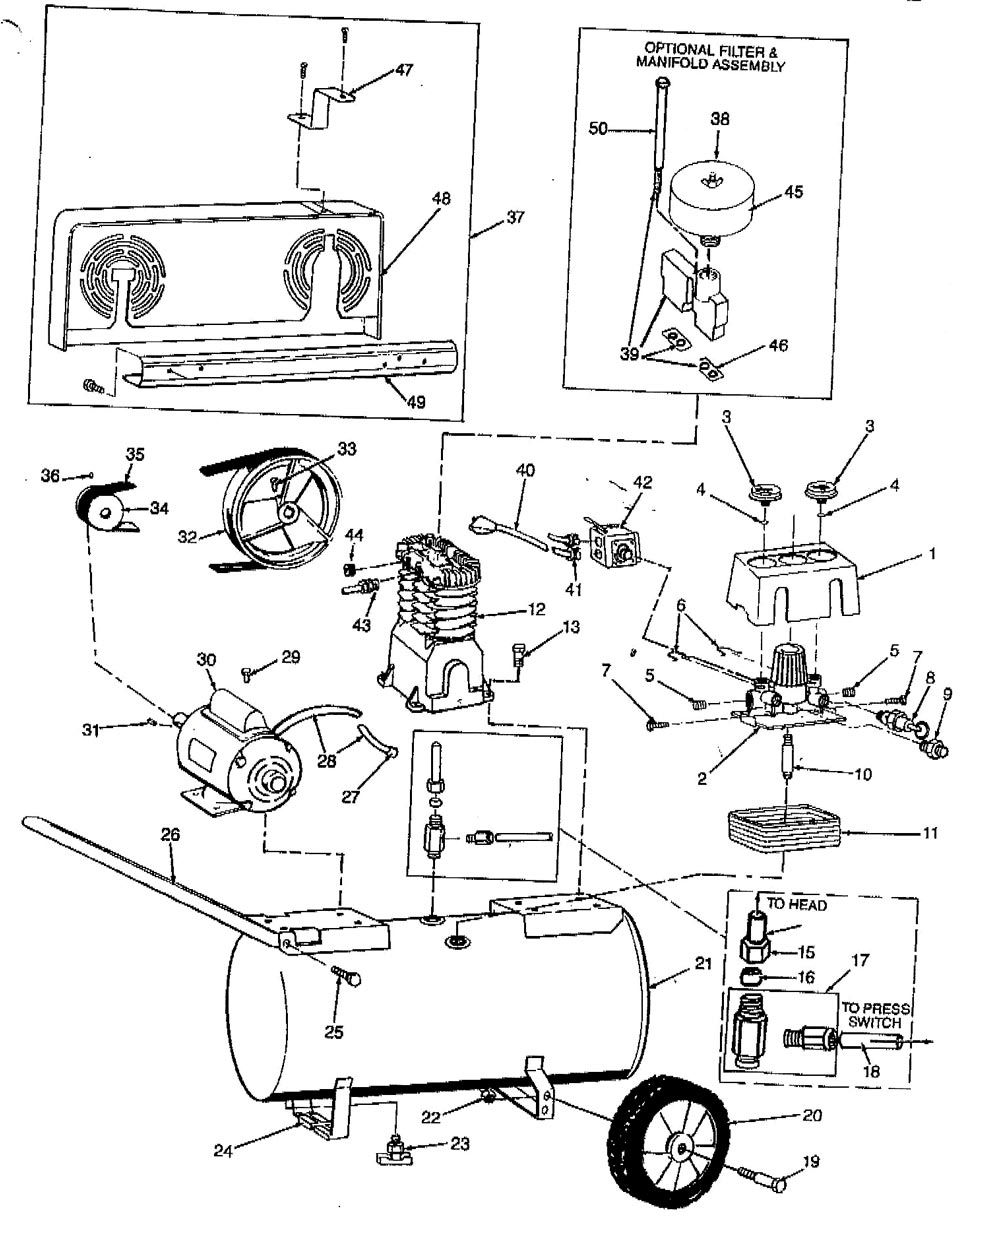 wiring diagram for kobalt air compressor with Abac Air  Pressor Wiring Diagram on Windmill And Generator Wiring Design further Quincy Air  pressor Wiring Diagram further Husky Air  pressor Start Capacitor additionally Torque Wrench Parts Diagram further Porter Cable Cpf4515 Type Gal Air  pressor Parts C 129 1662 2192.